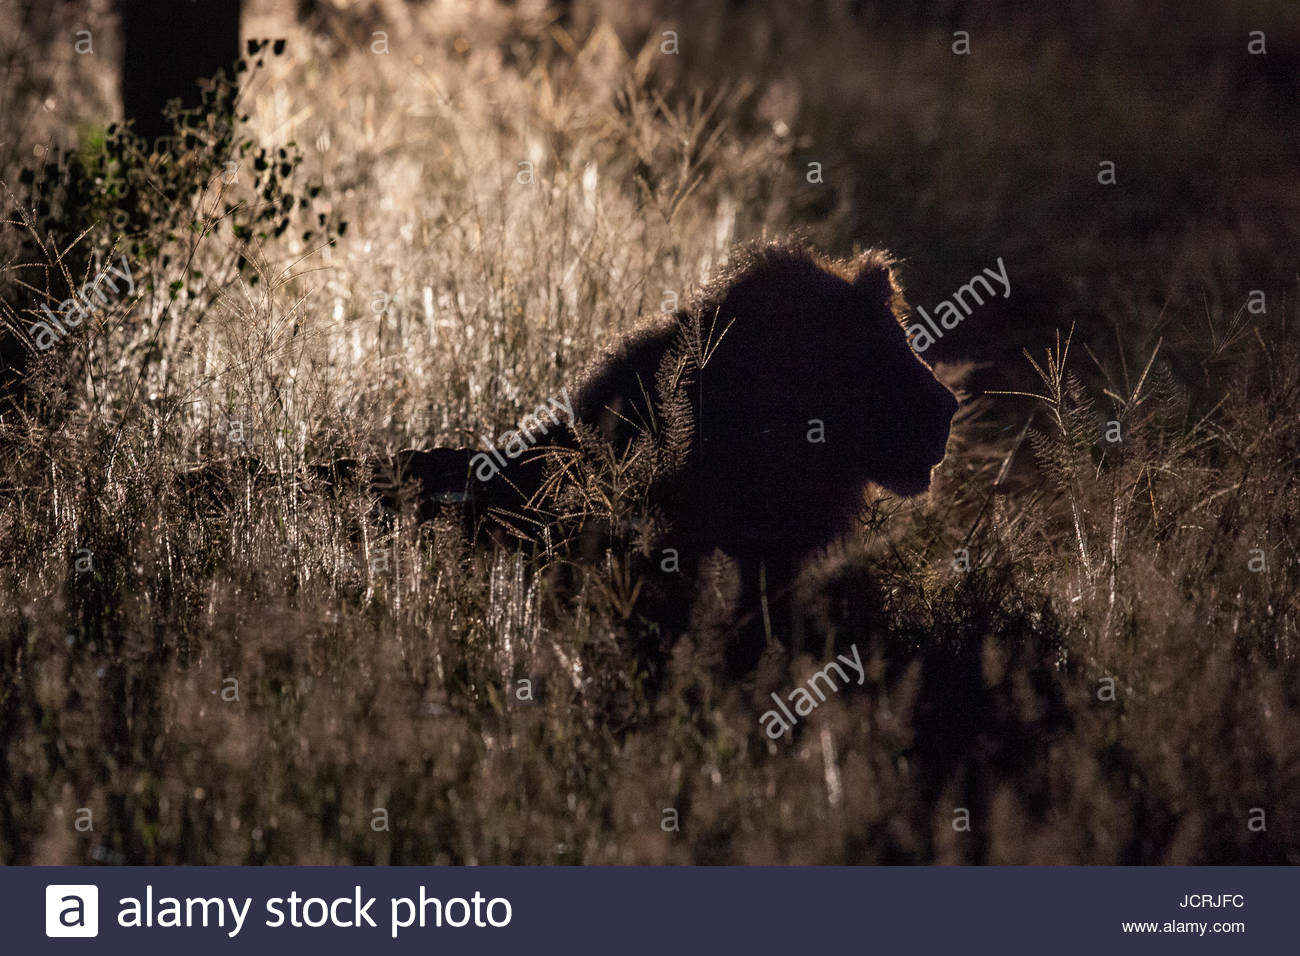 A large male lion, Panthera leo, resting in tall grass. Stock Photo